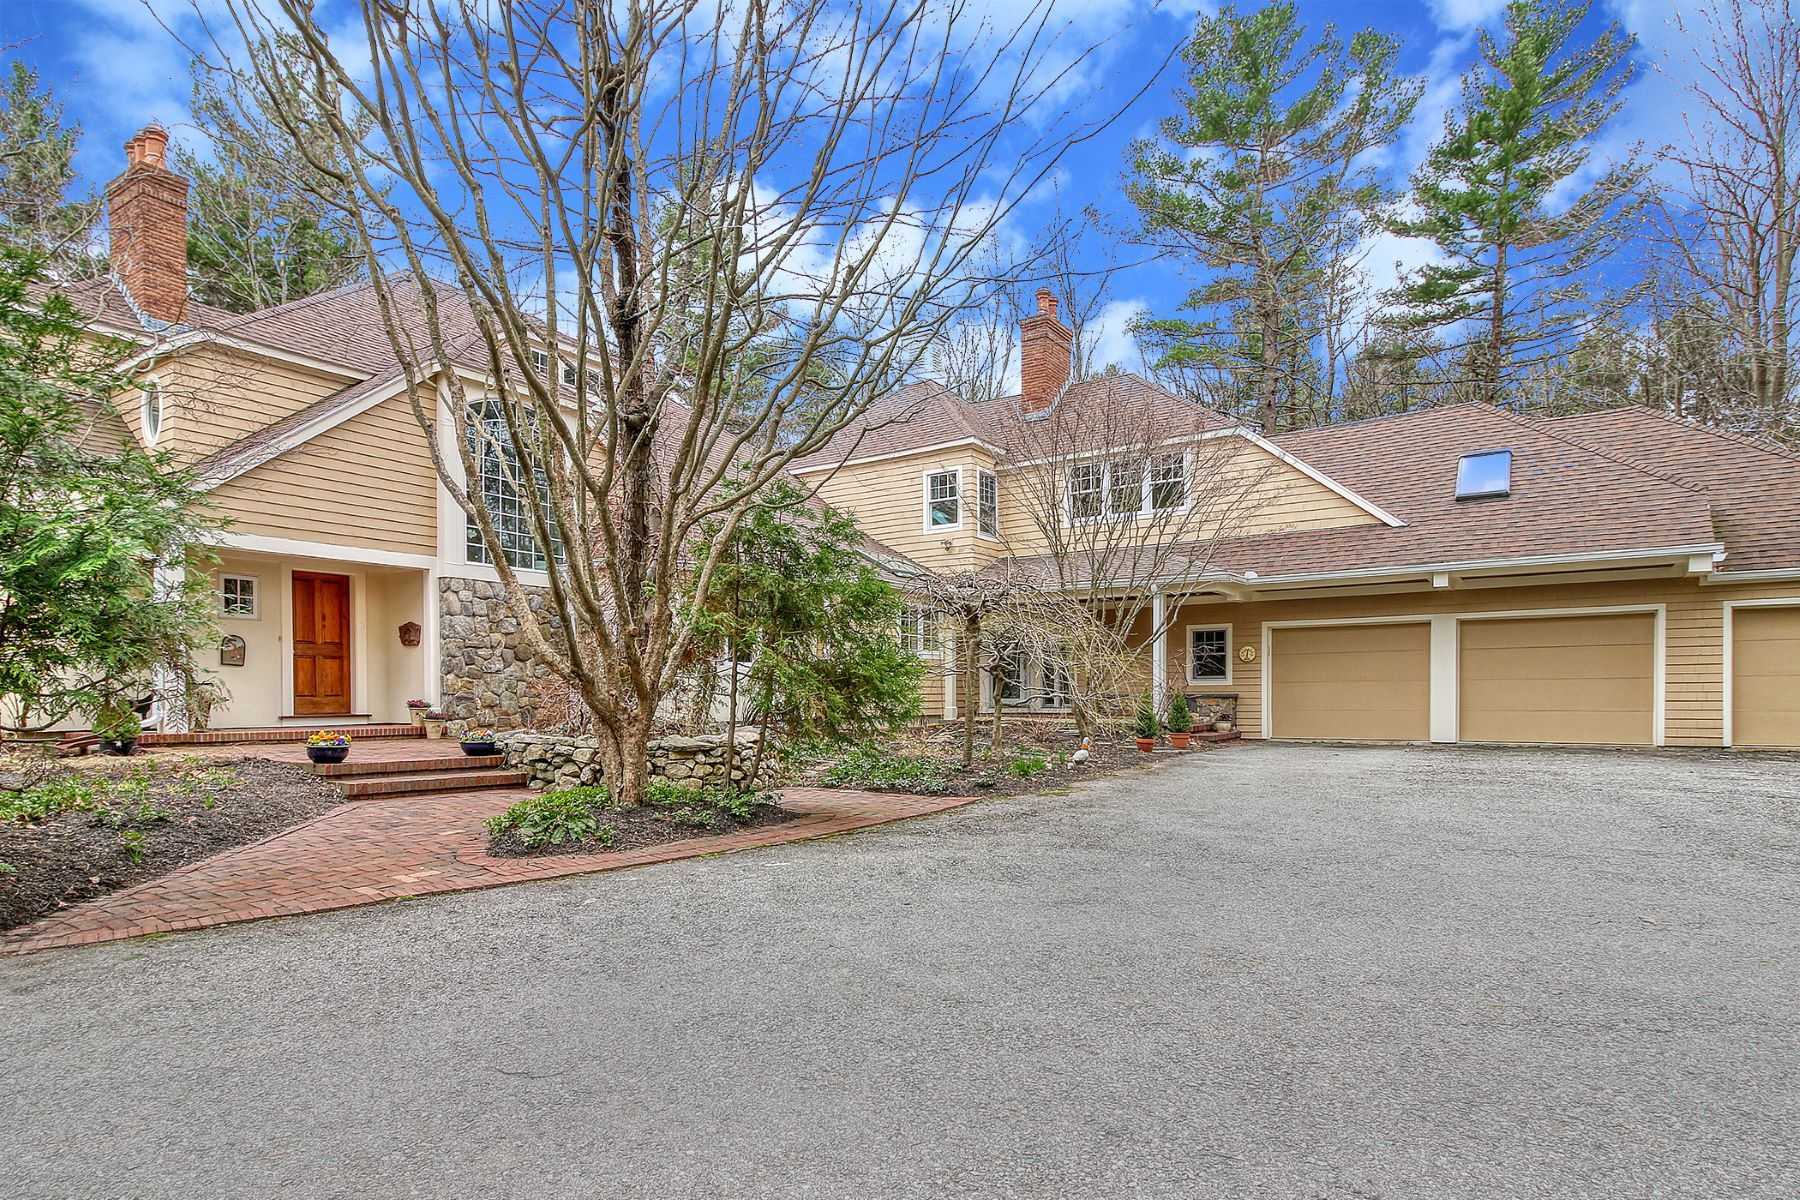 Single Family Home for Active at 146 Sandy Pond Road, Lincoln 146 Sandy Pond Rd Lincoln, Massachusetts 01773 United States